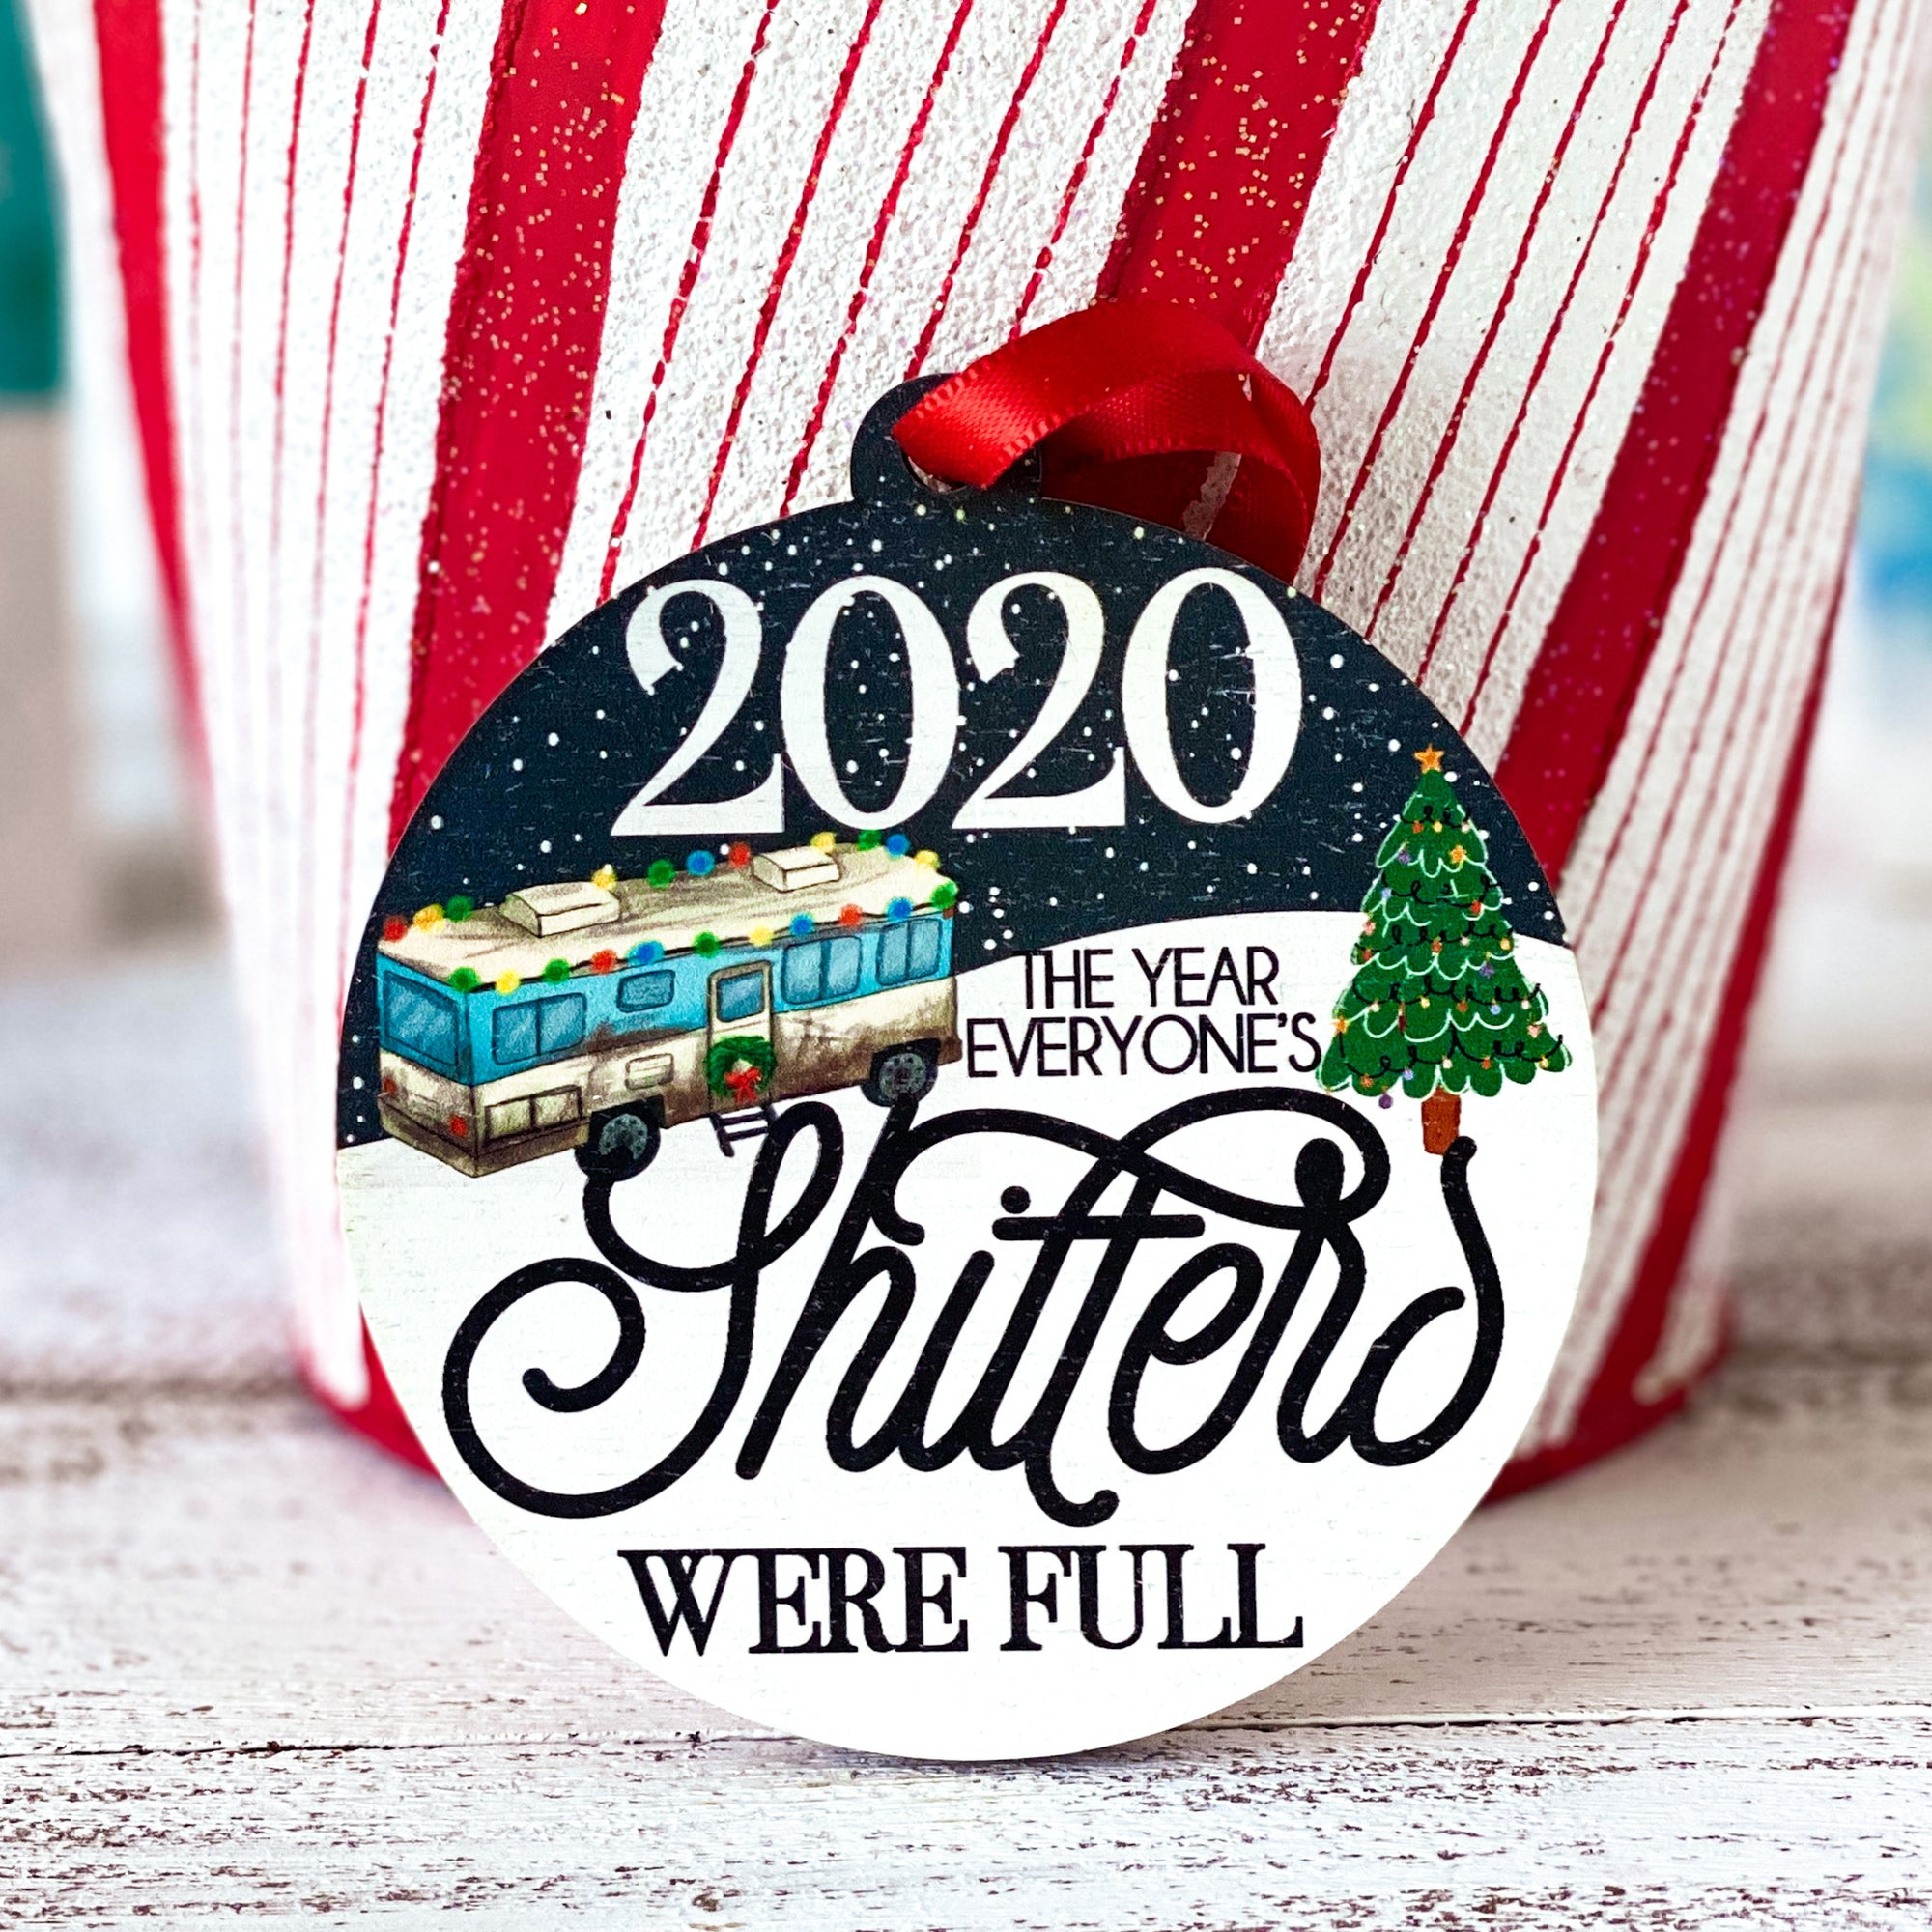 shitters full christmas ornament